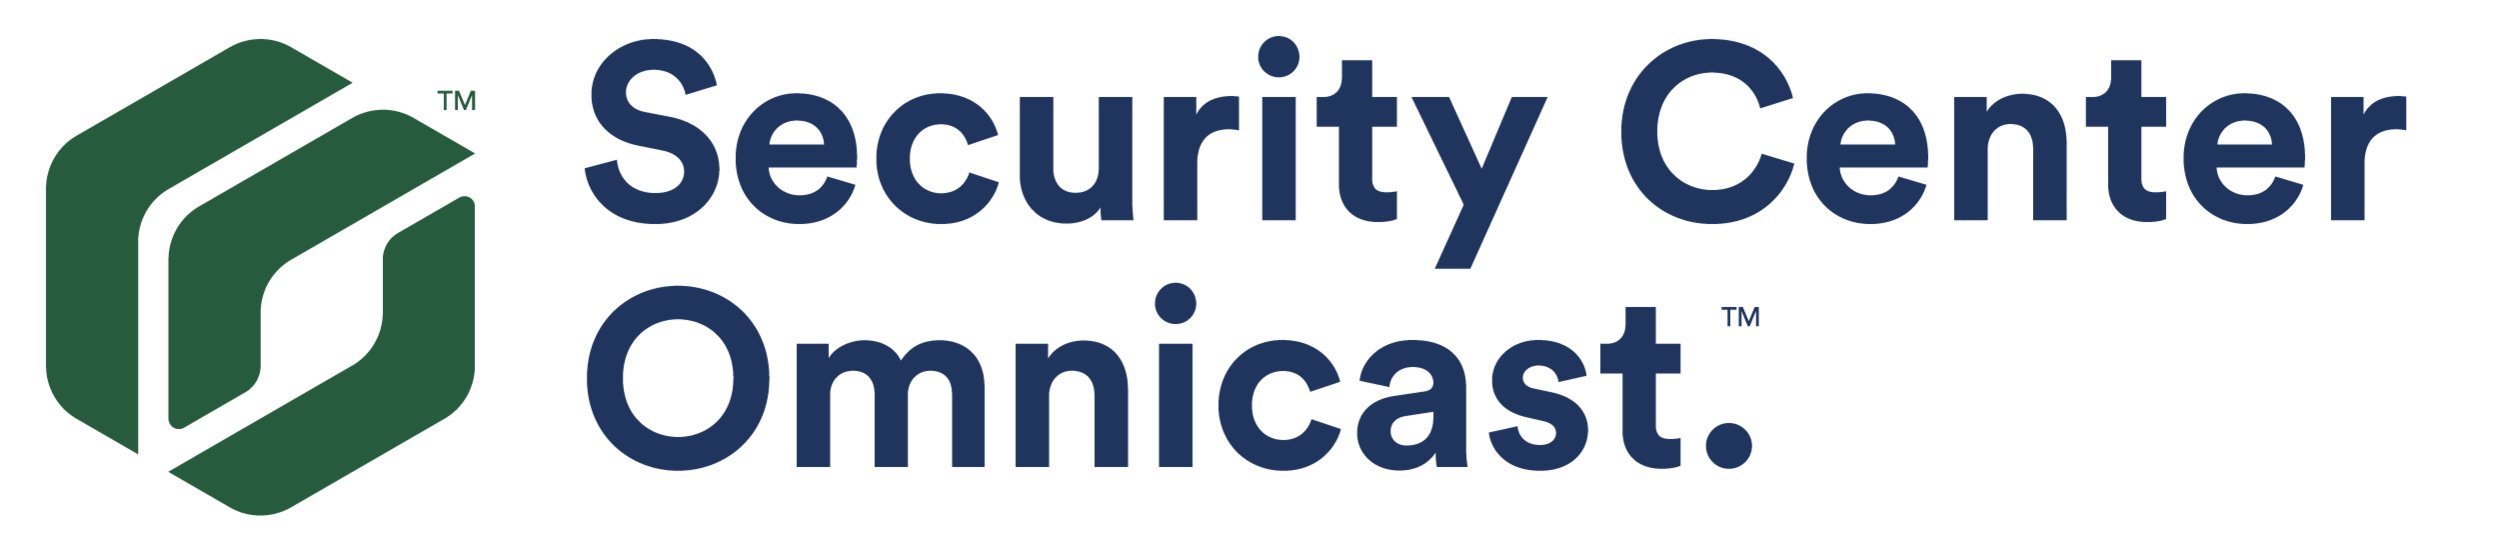 Security Center Omnicast logo- colour RGB.png